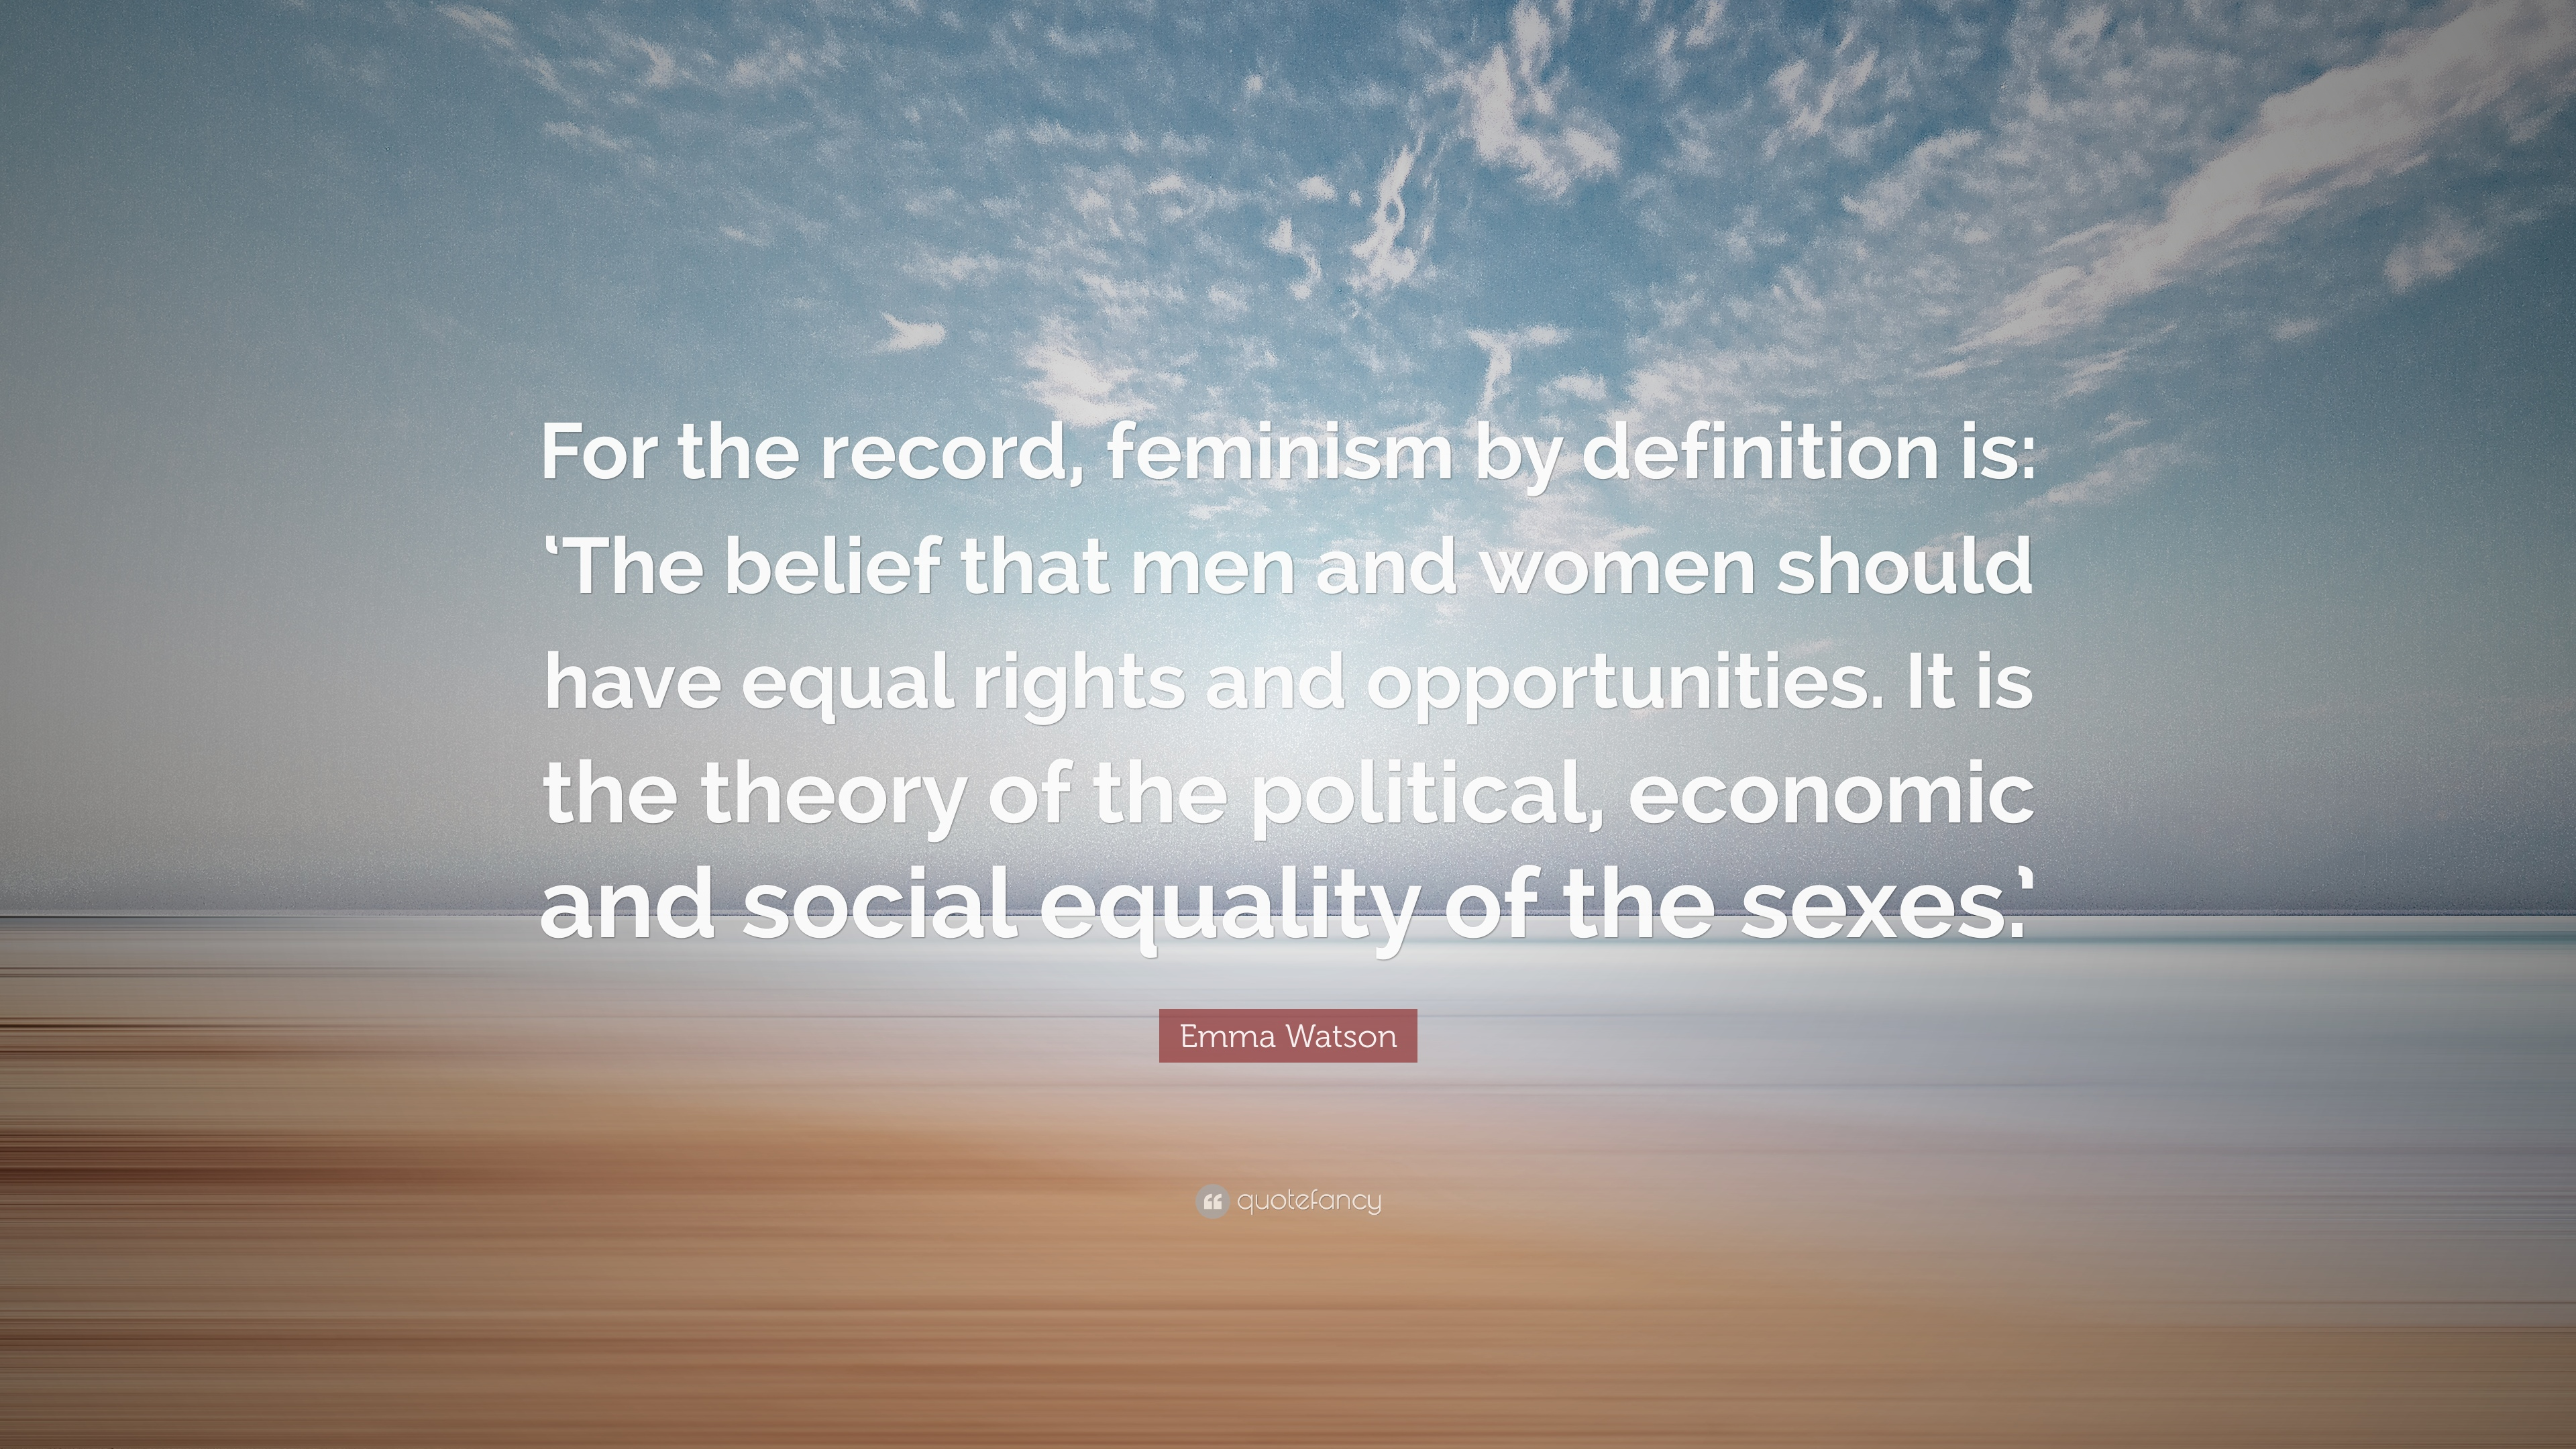 Gender Equality Universally Embraced, But Inequalities Acknowledged